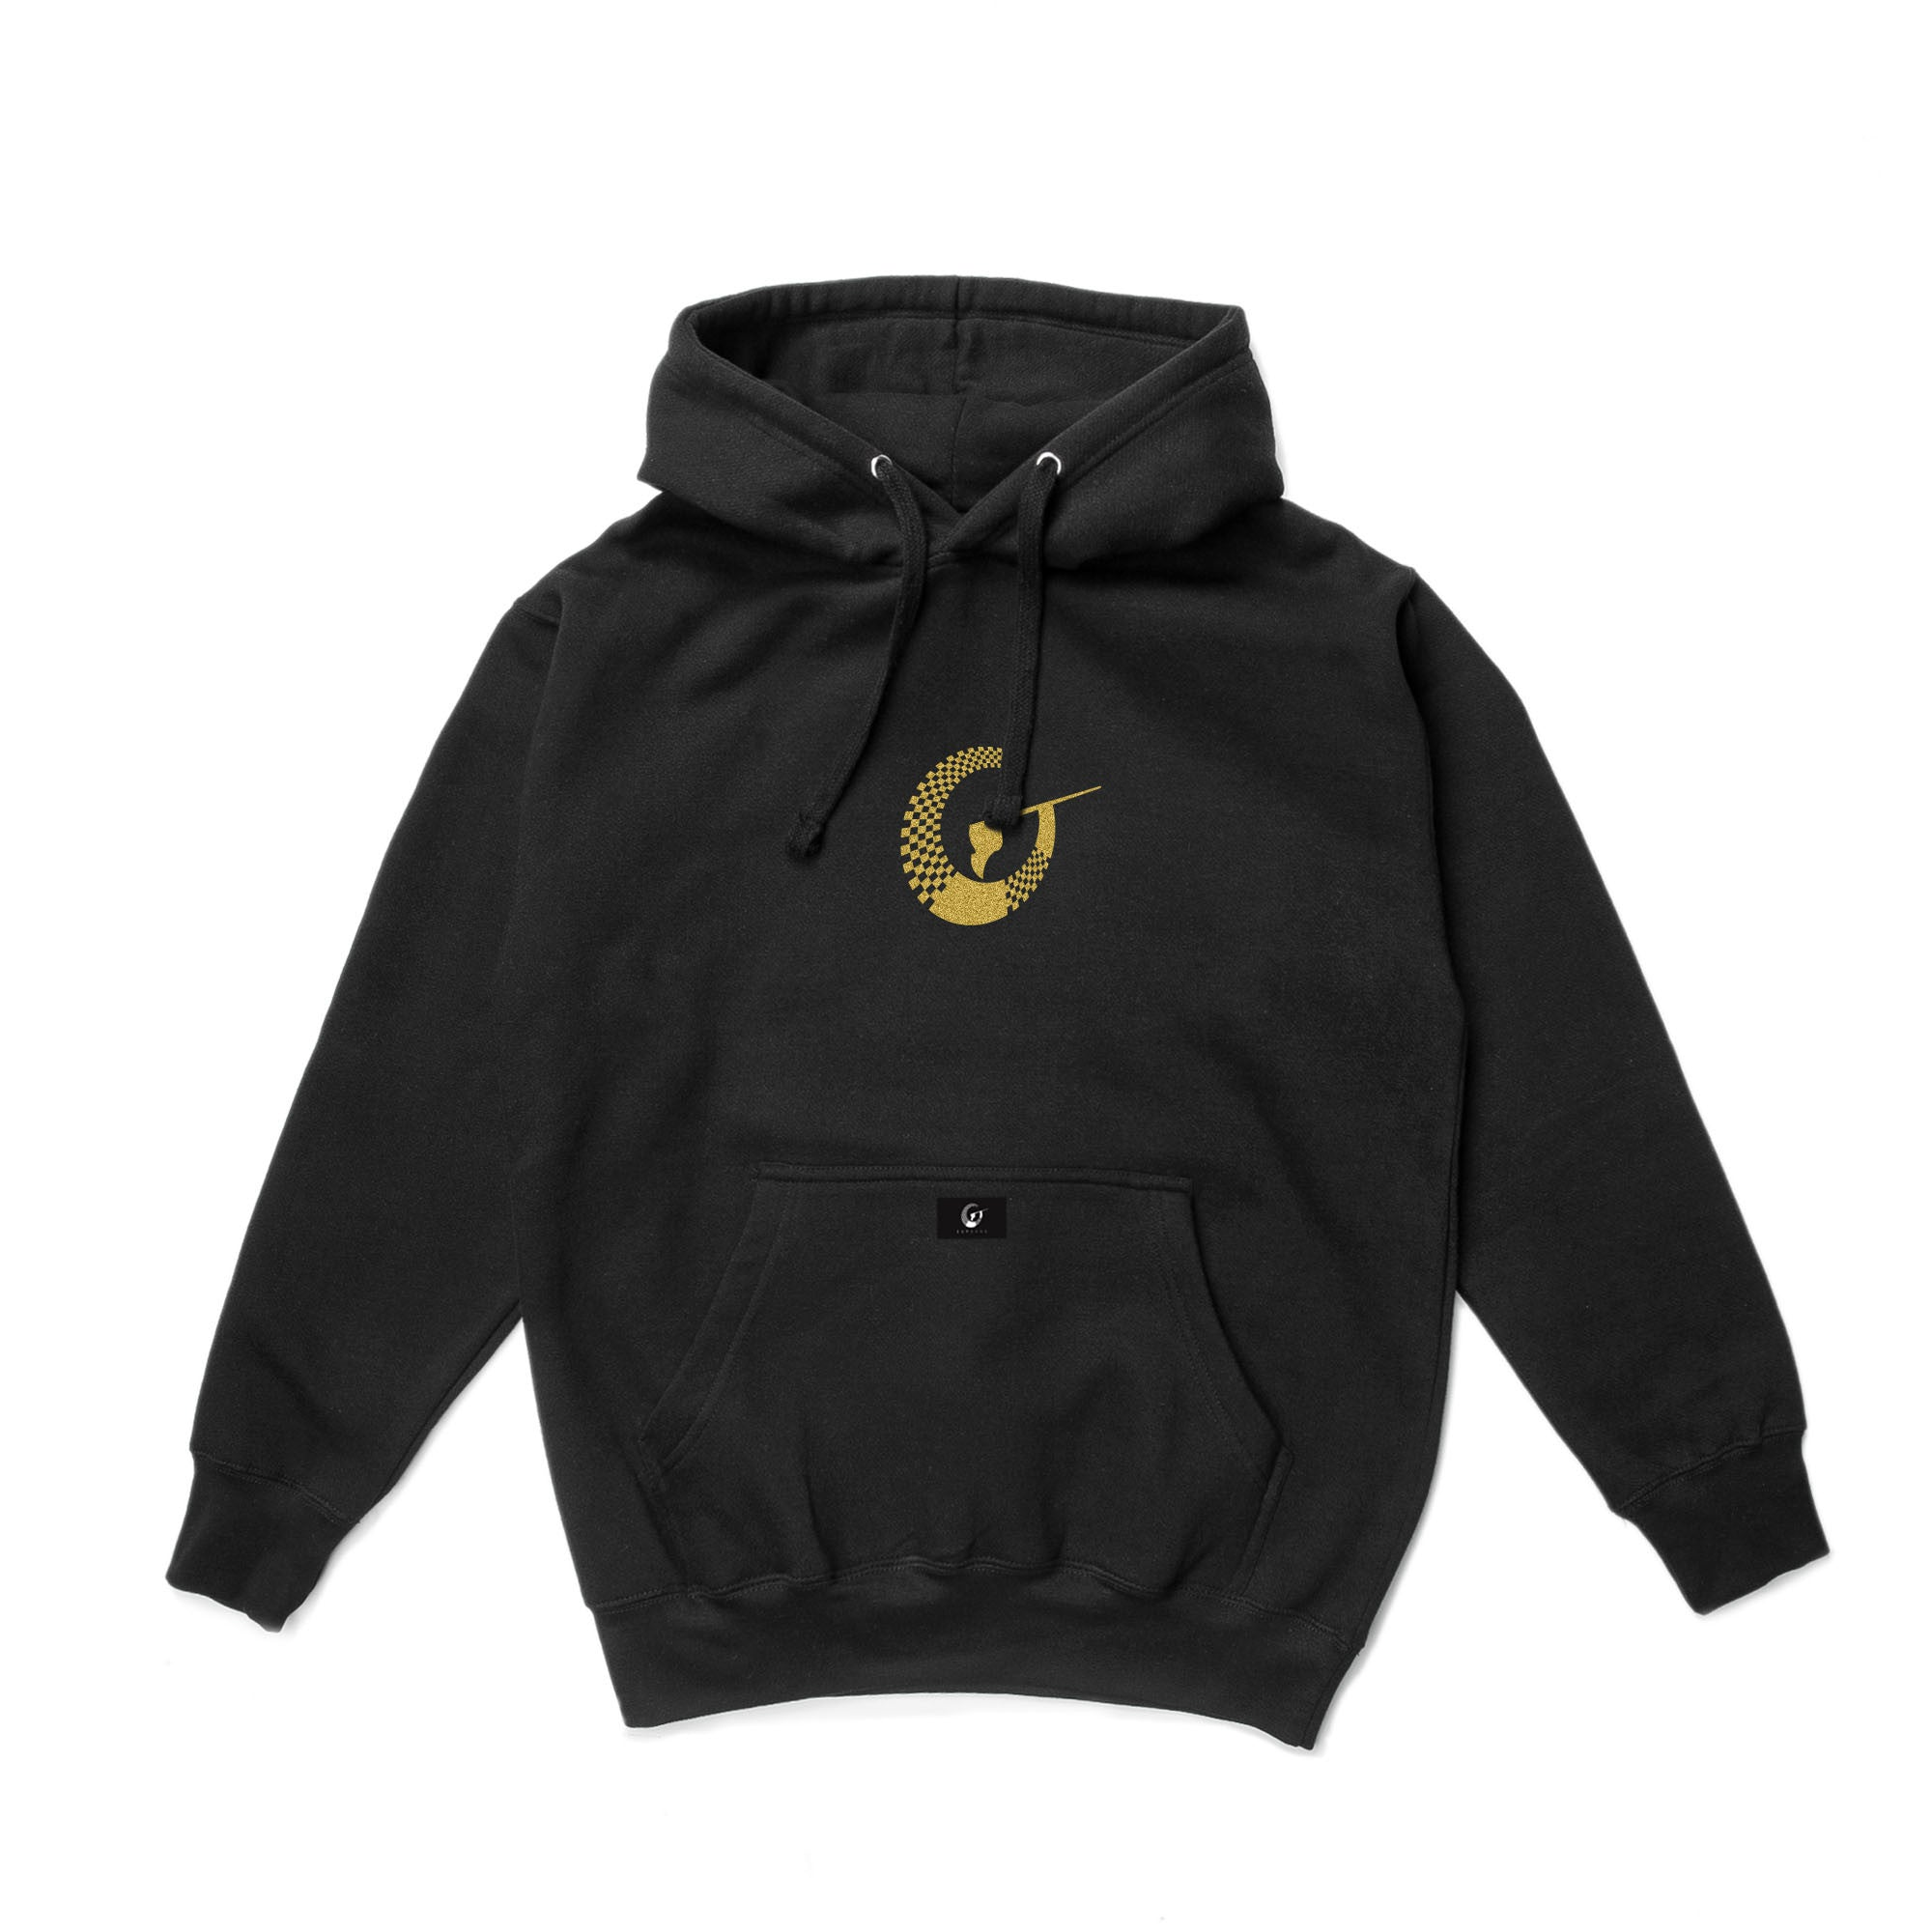 Inspire (Pullover) - Black/Metalic Gold